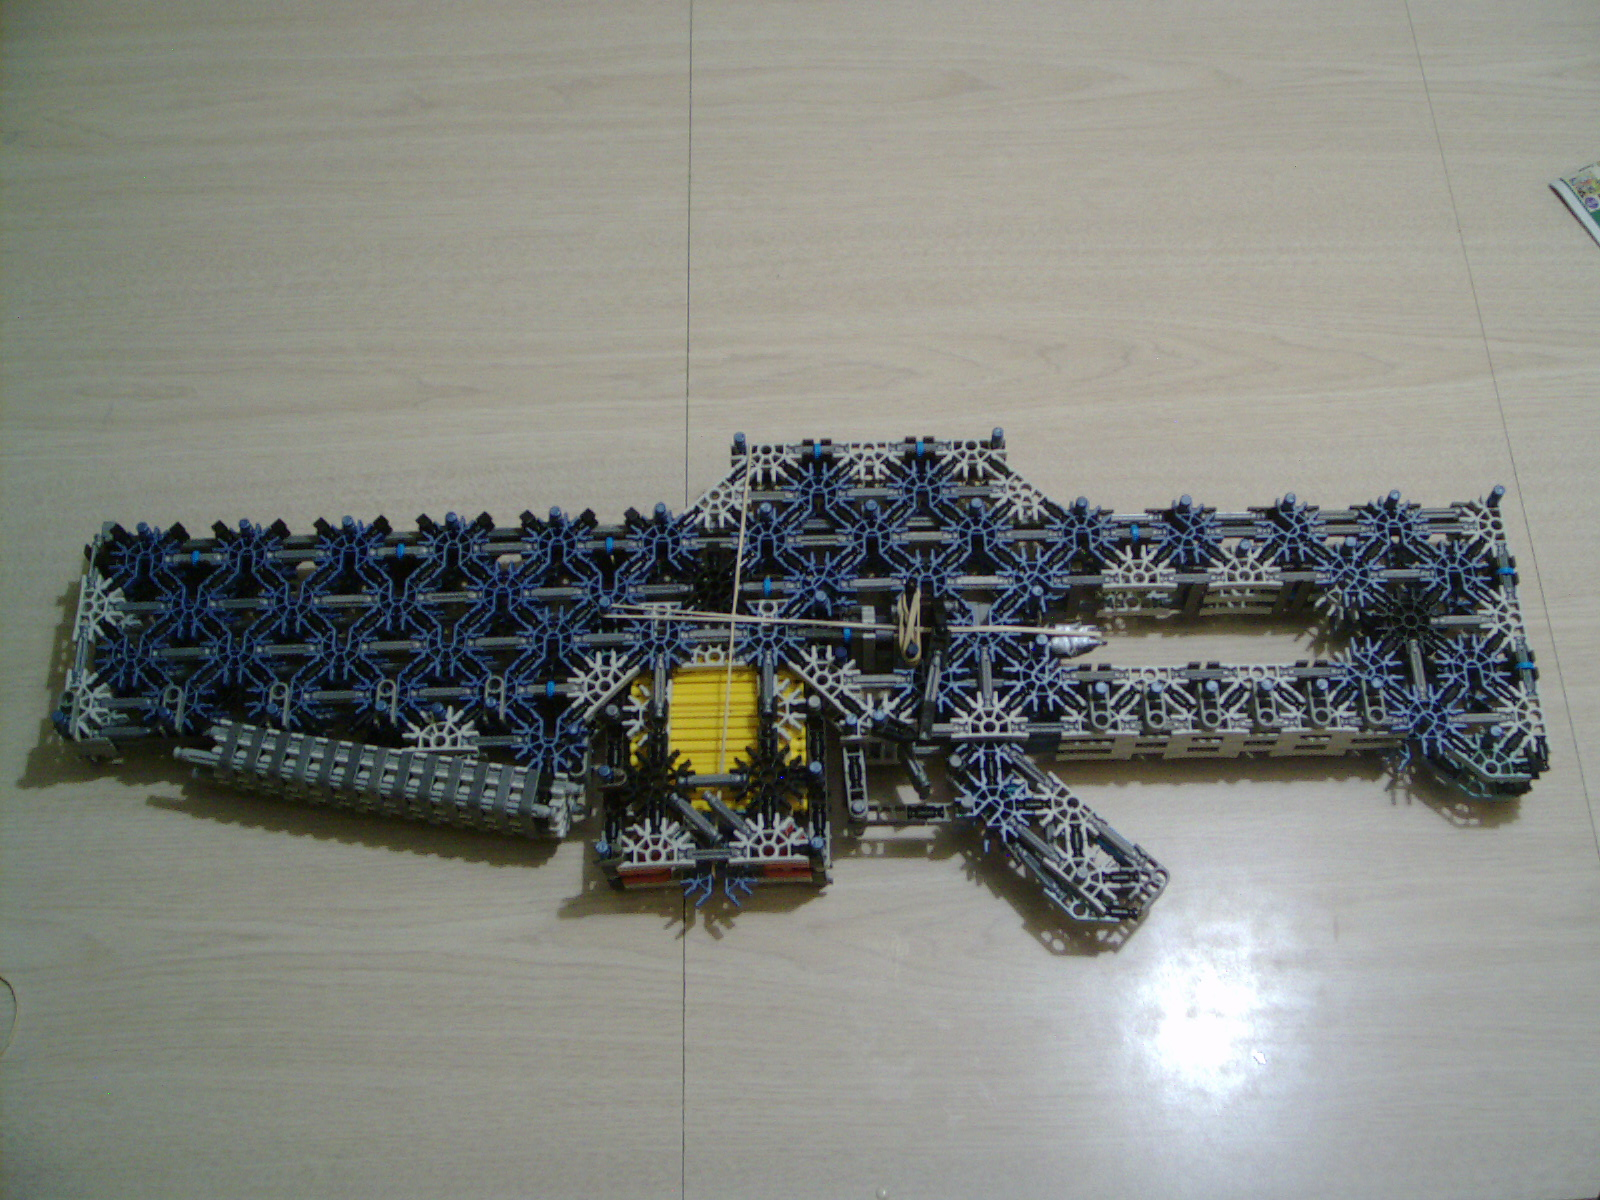 knex assault kit -scar 11.01 knex -assault knife